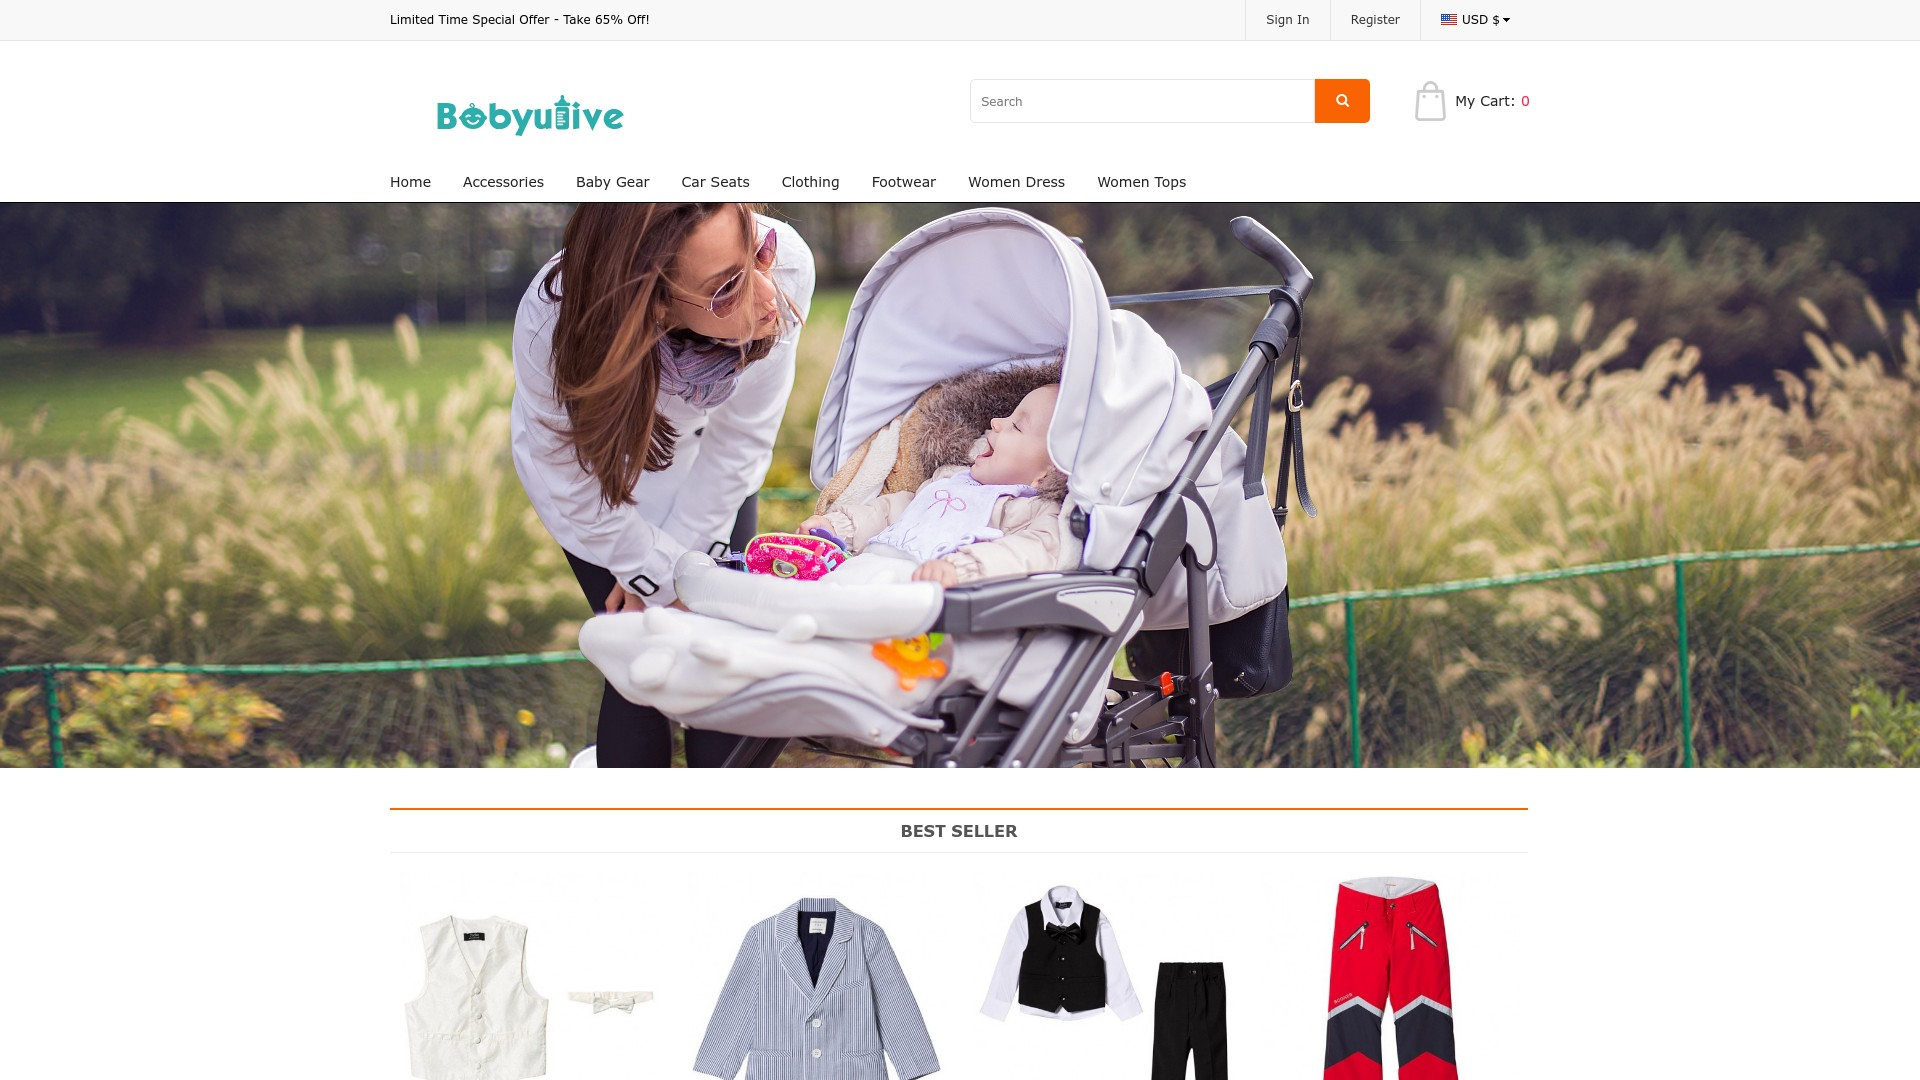 Is Babyulive a Scam? See the Review of the Online Baby Store